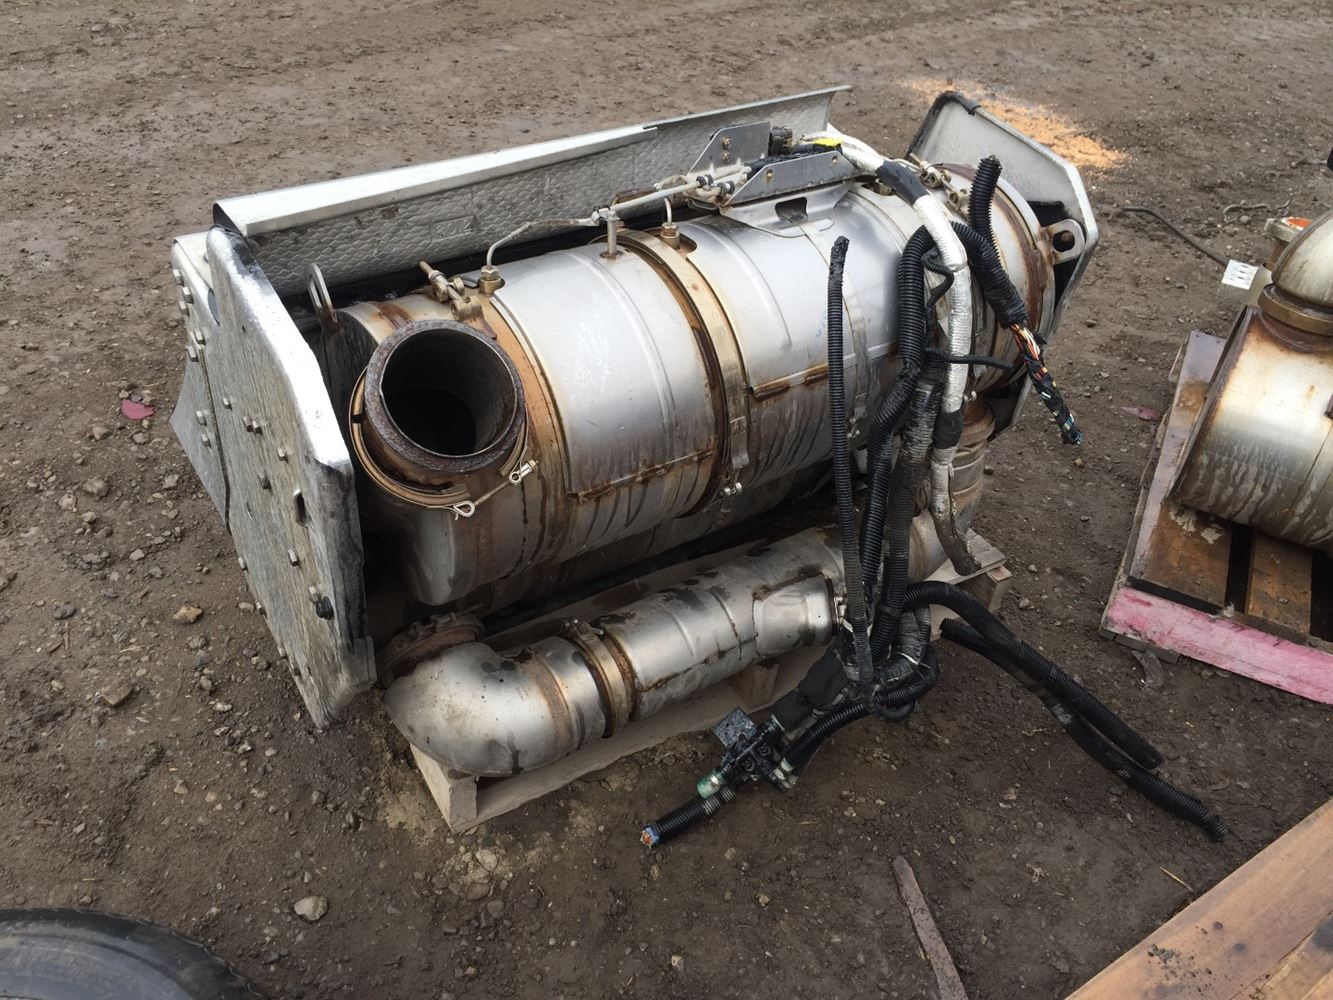 Dpf Diesel Particulate Filter Trucks Parts For Sale ... Kenworth T800 (Stock #H248-5) | Diesel Particulate Filter (DPF) | TPI